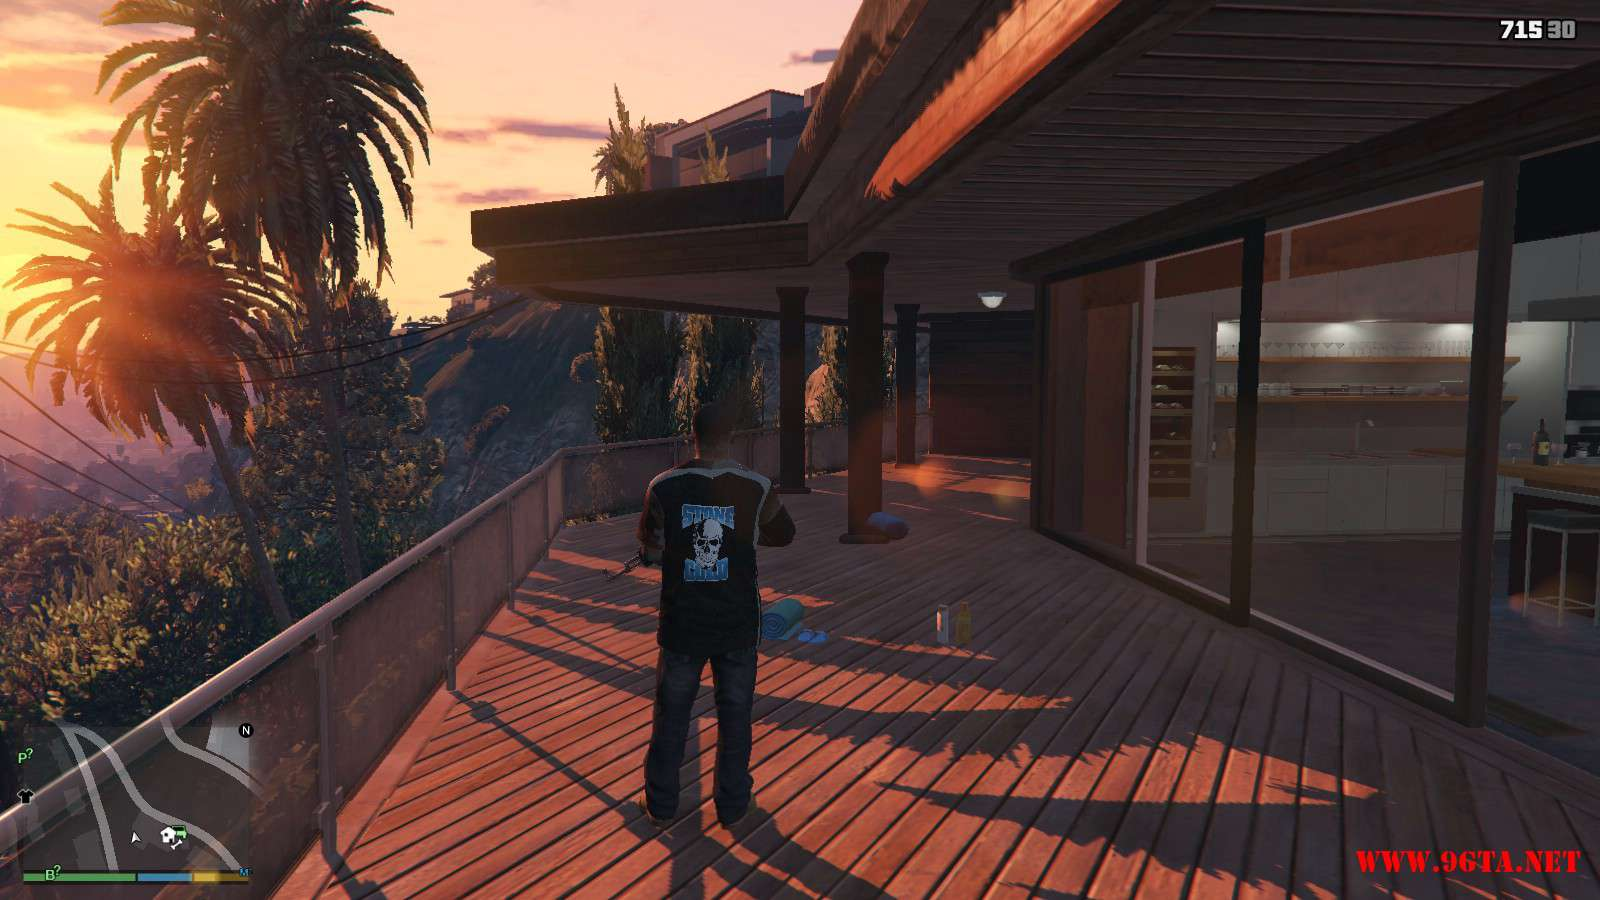 WWE Stone Cold Steve Austin Shirt GTA5 Mods (10)